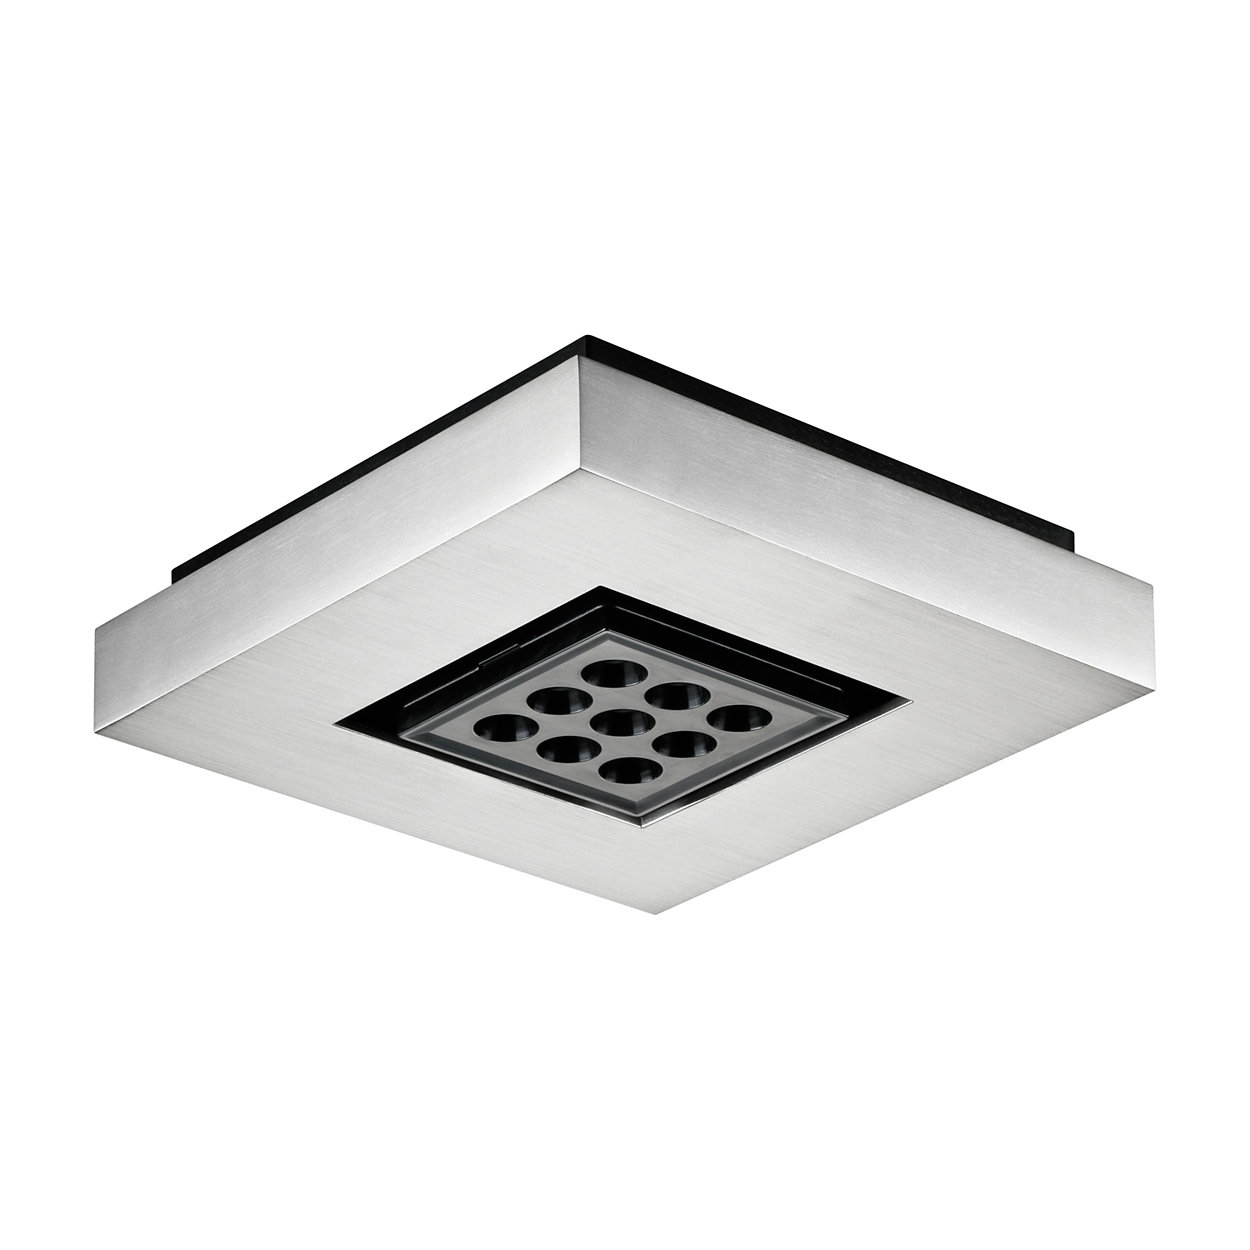 eW Downlight Powercore - Downlight a LED montato su superficie per illuminazione d'accento e generale